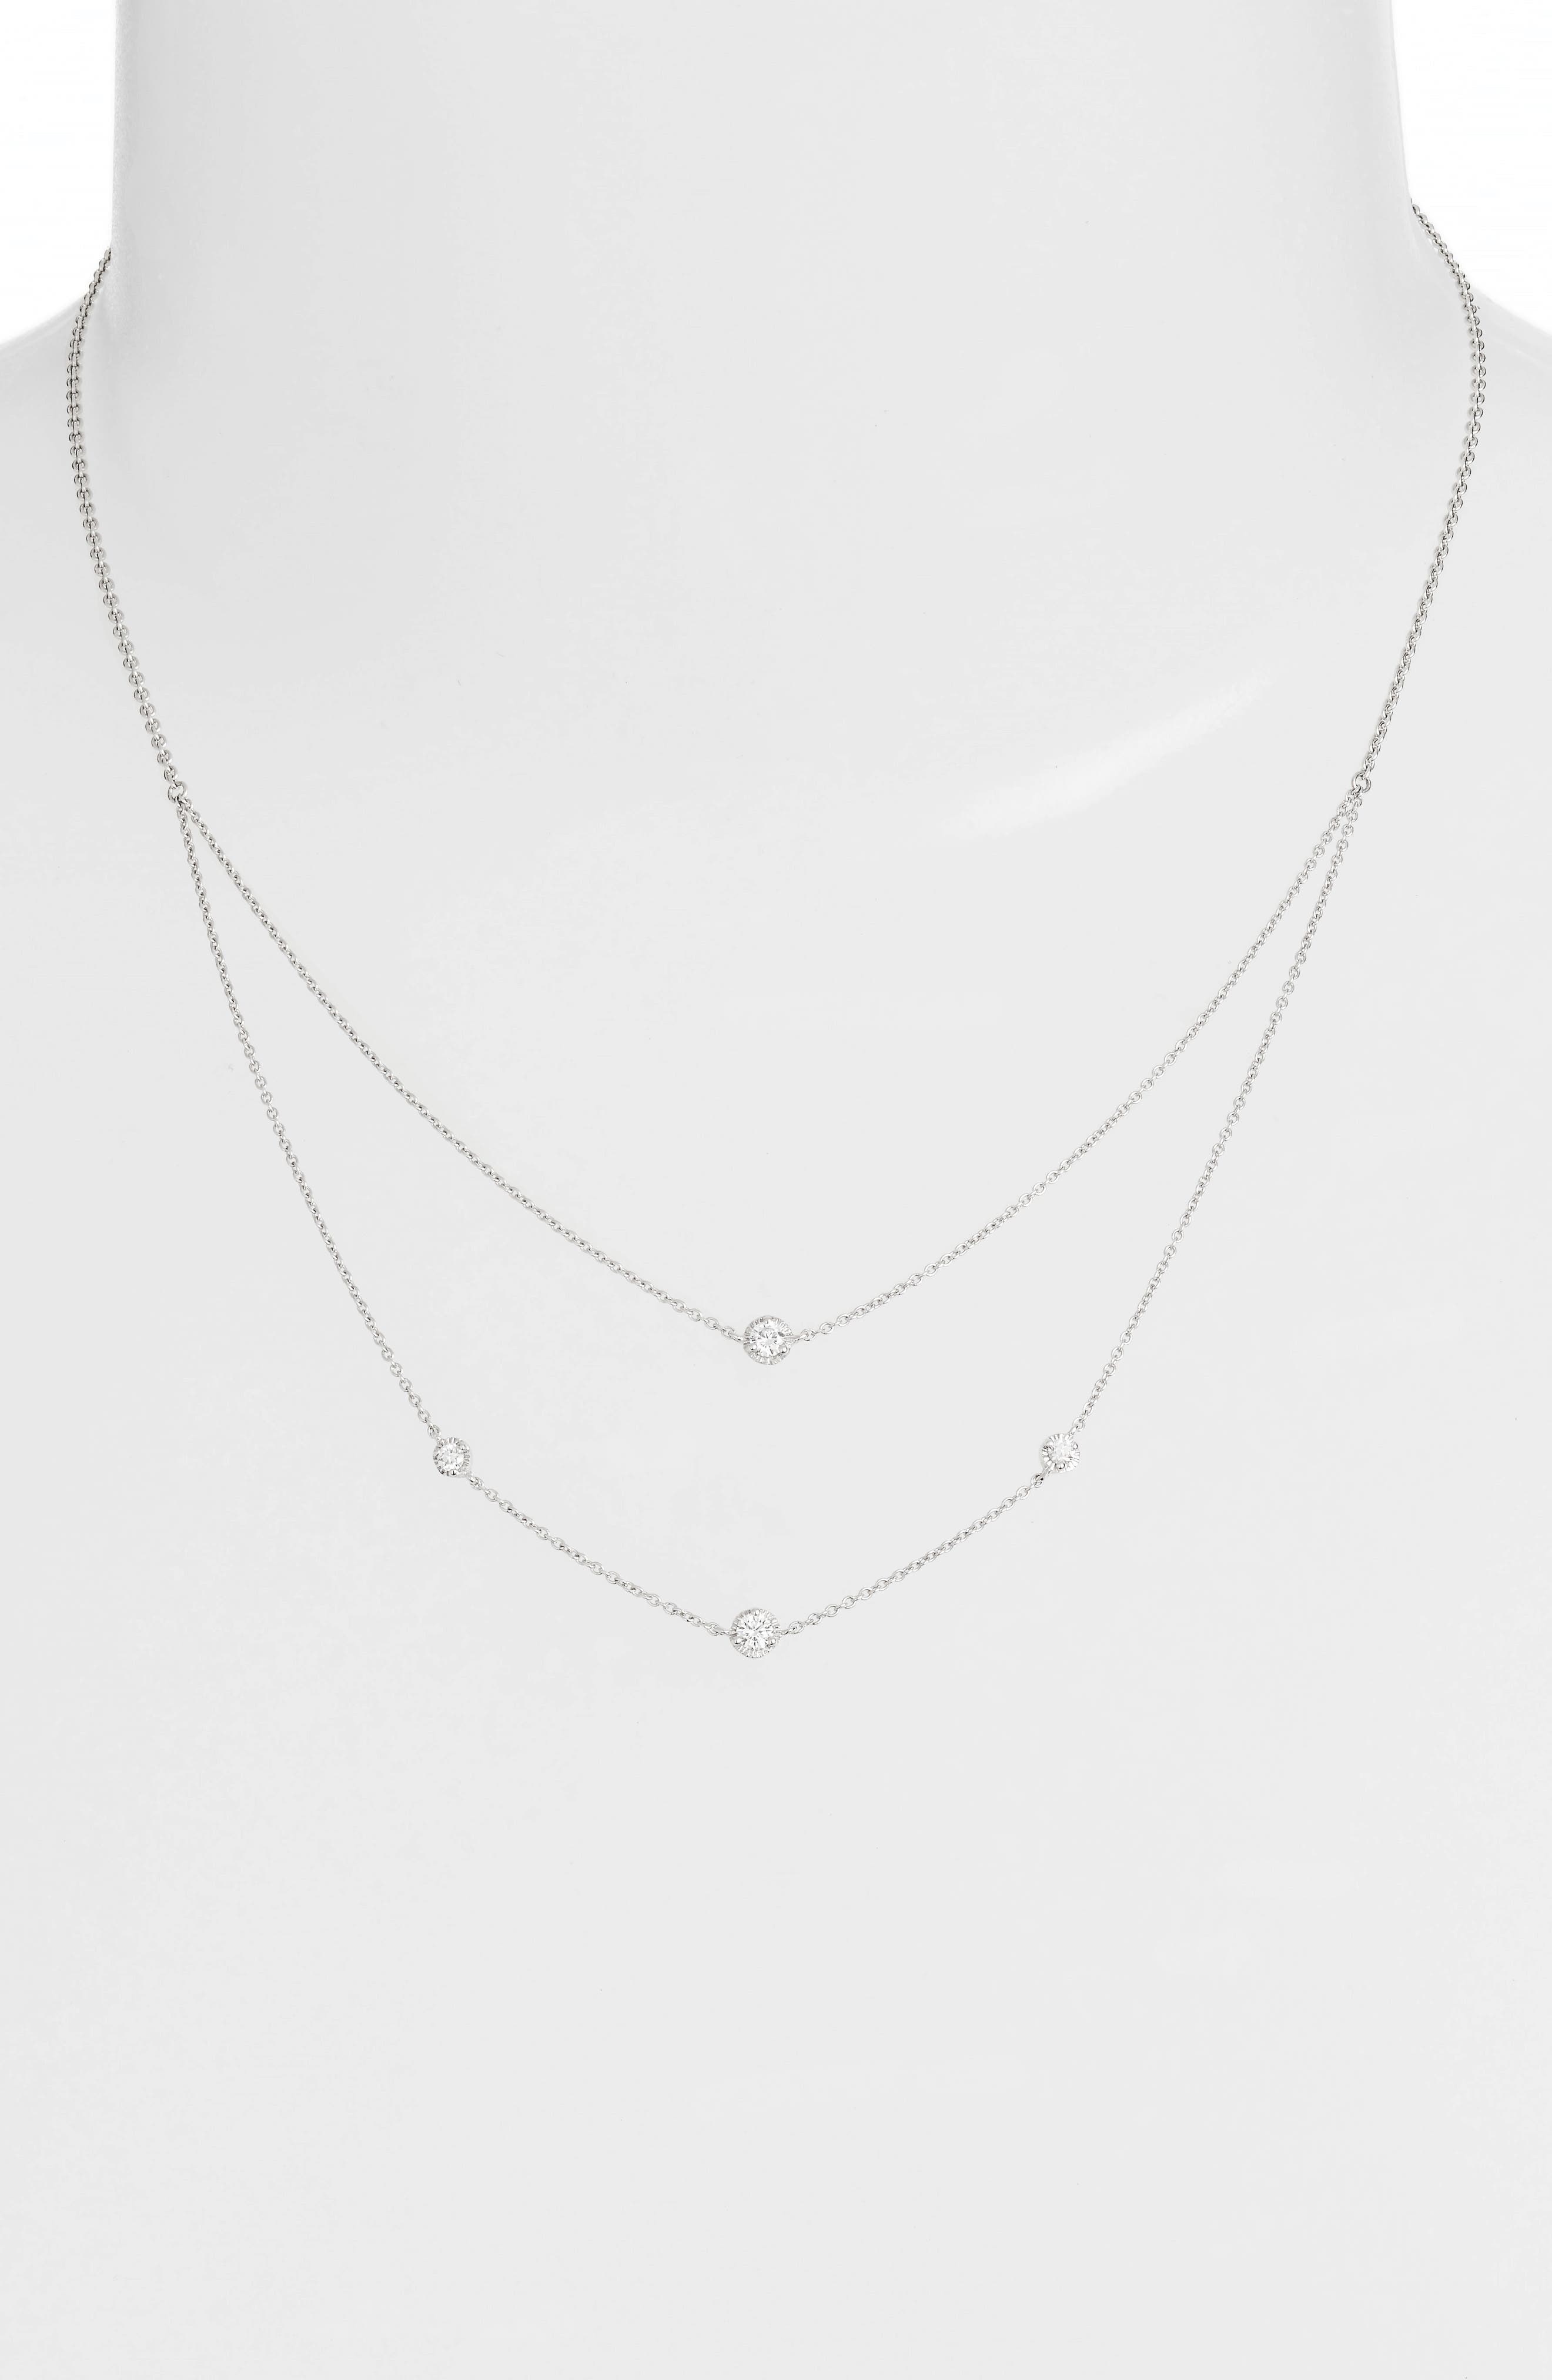 Mila Double Layer Diamond Station Necklace,                             Alternate thumbnail 2, color,                             White Gold